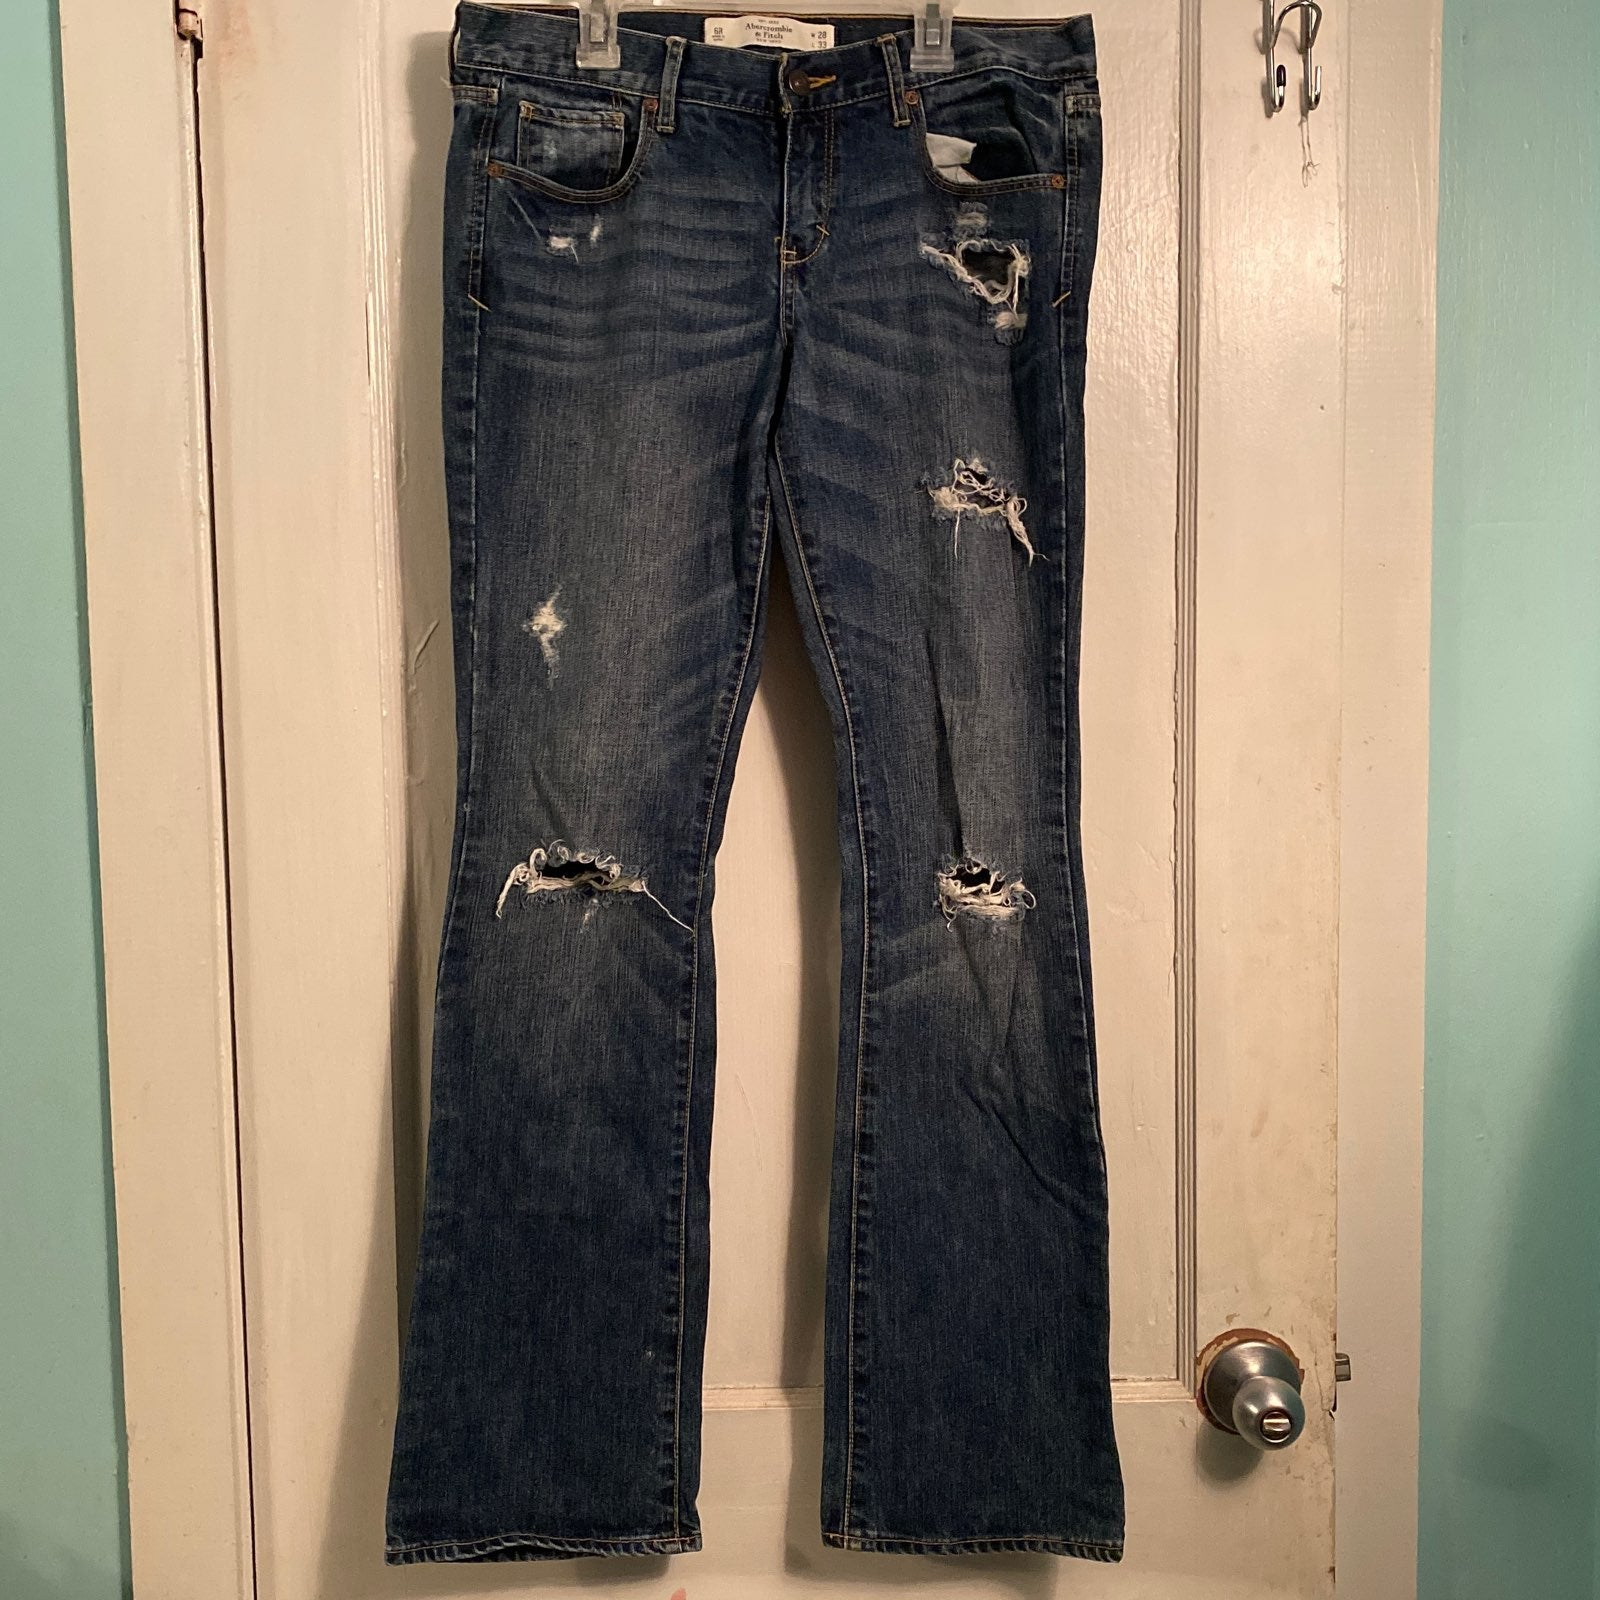 Abercrombie and Fitch jeans